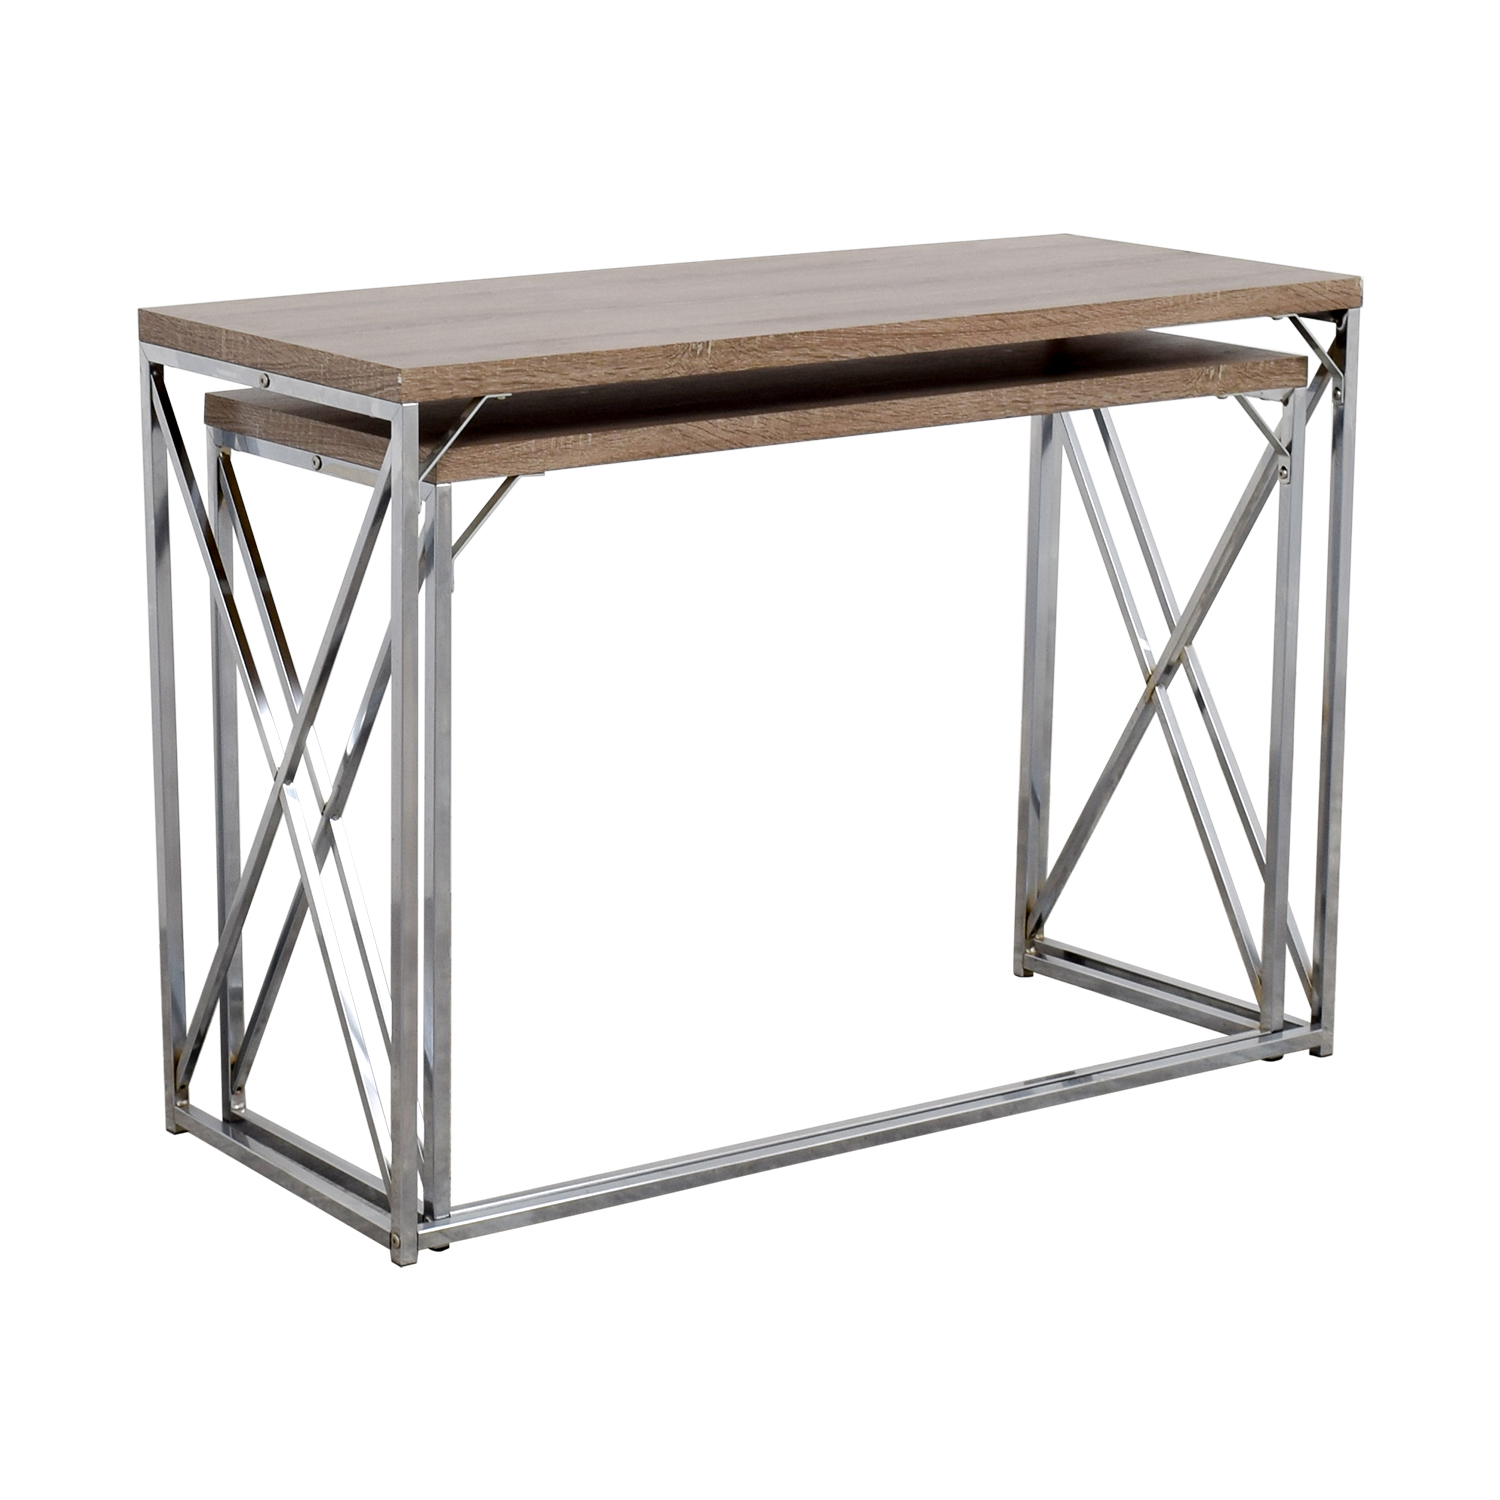 Genial ... Monarch Monarch Rustic Nesting Console Tables Discount ...